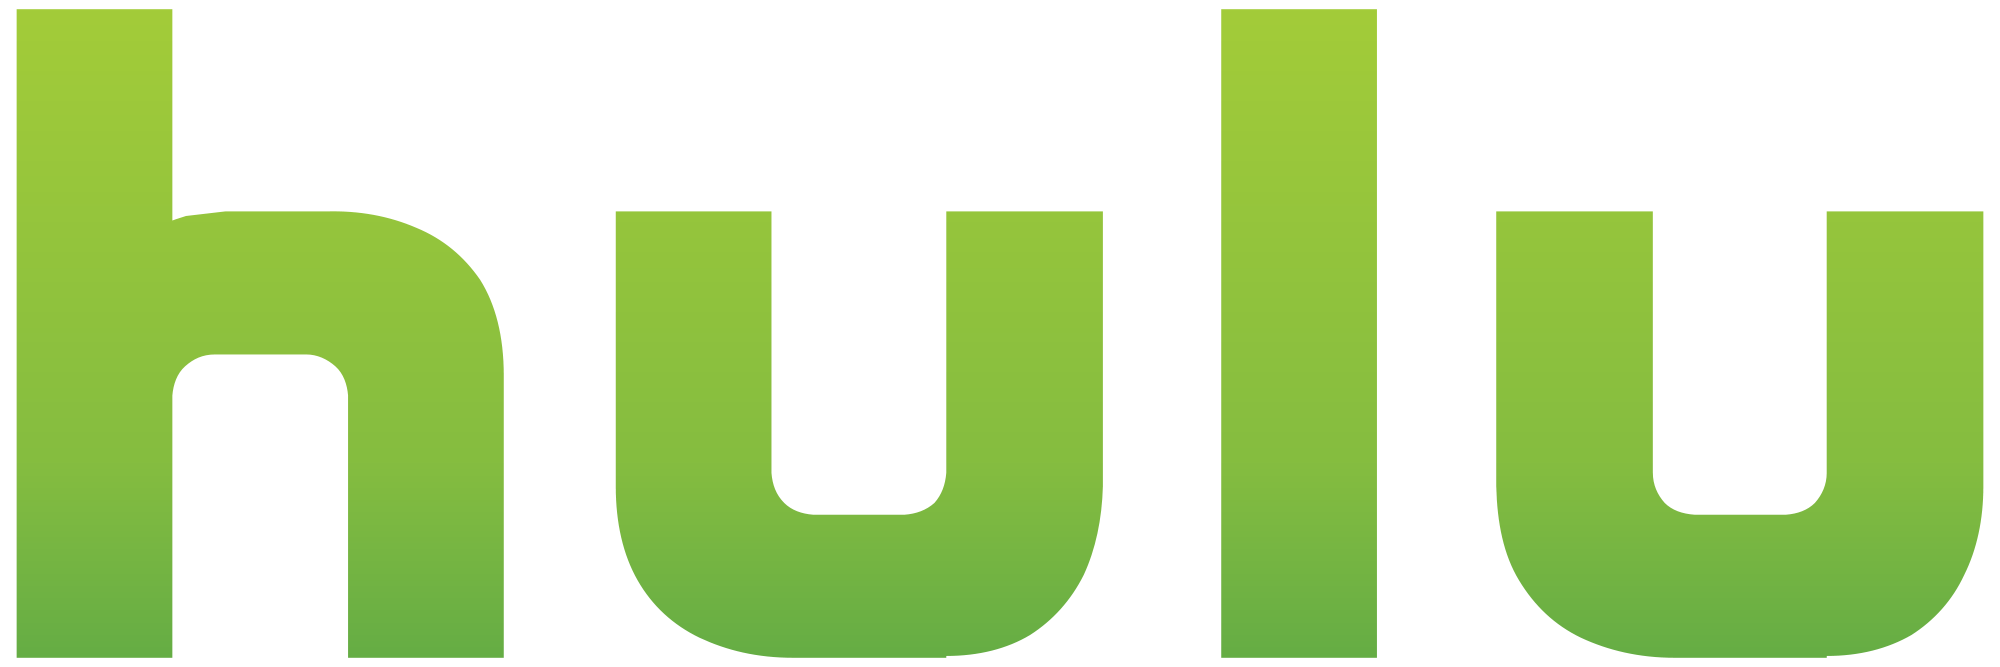 watch hulu outside US